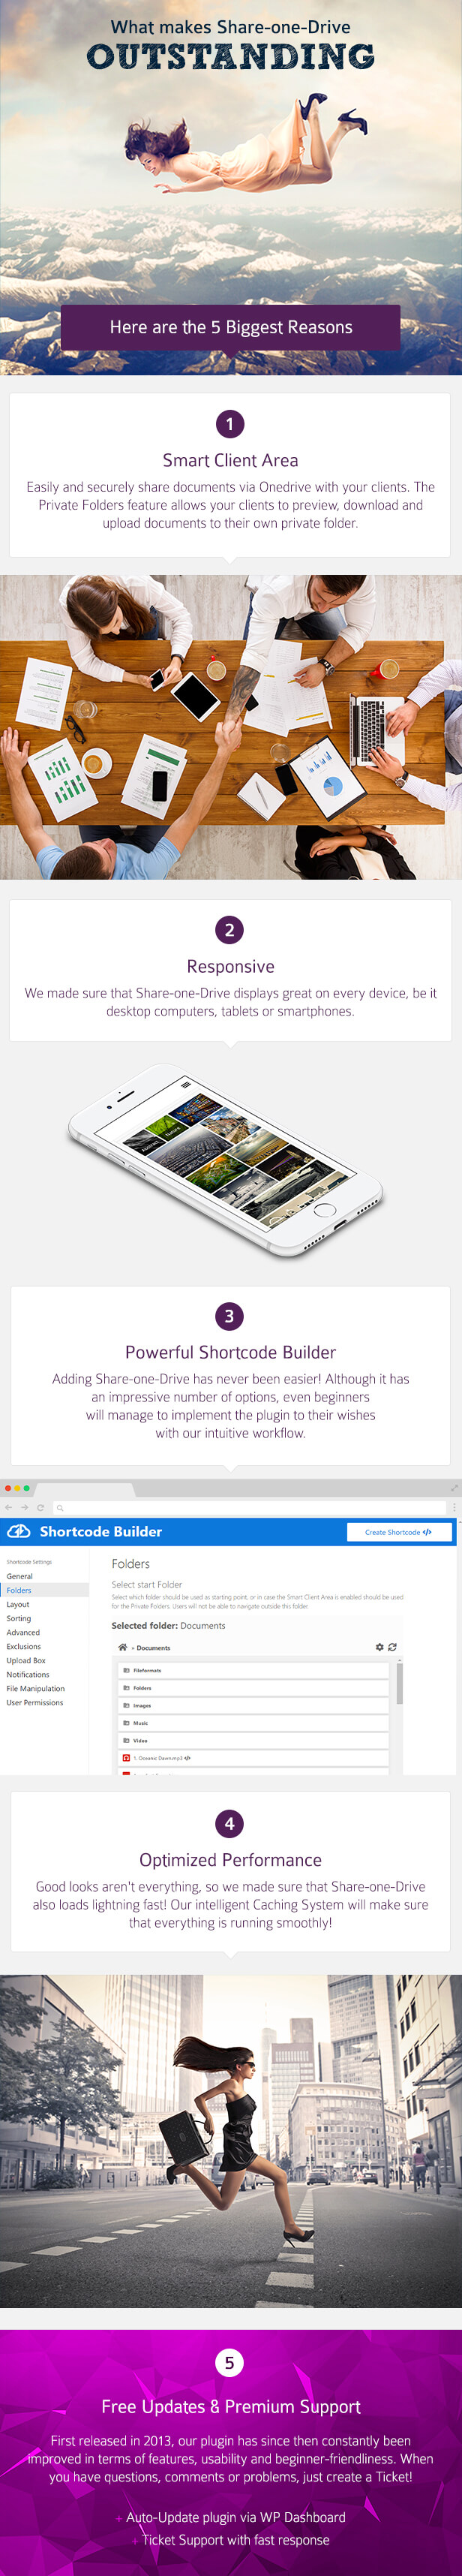 Share-one-Drive - The #1 Ultimate OneDrive plugin